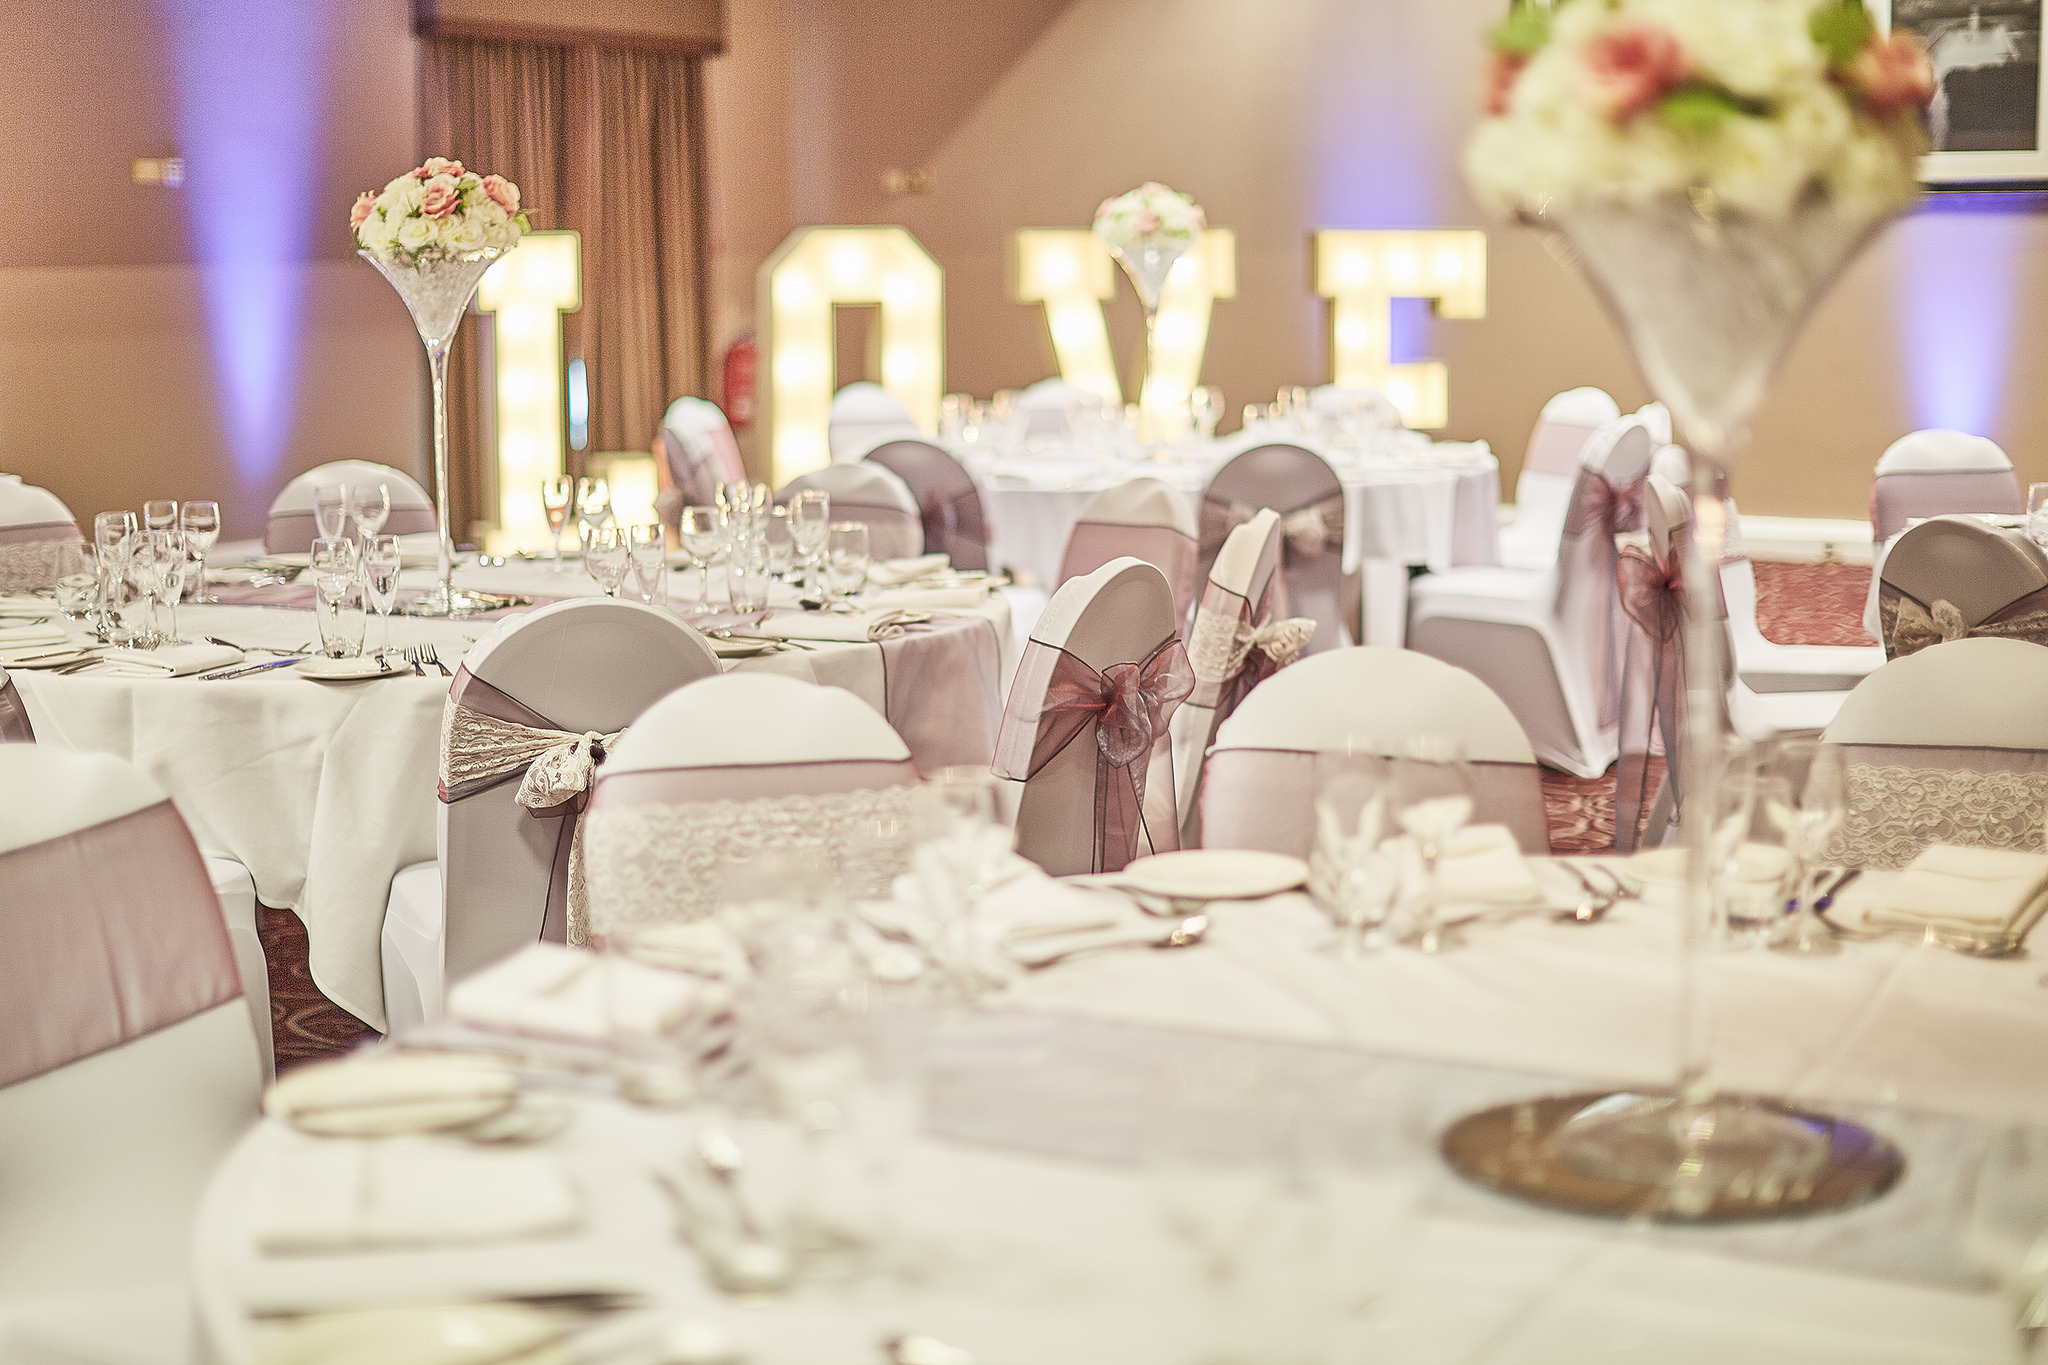 Eastwood Hall catering and wedding venue Nottingham